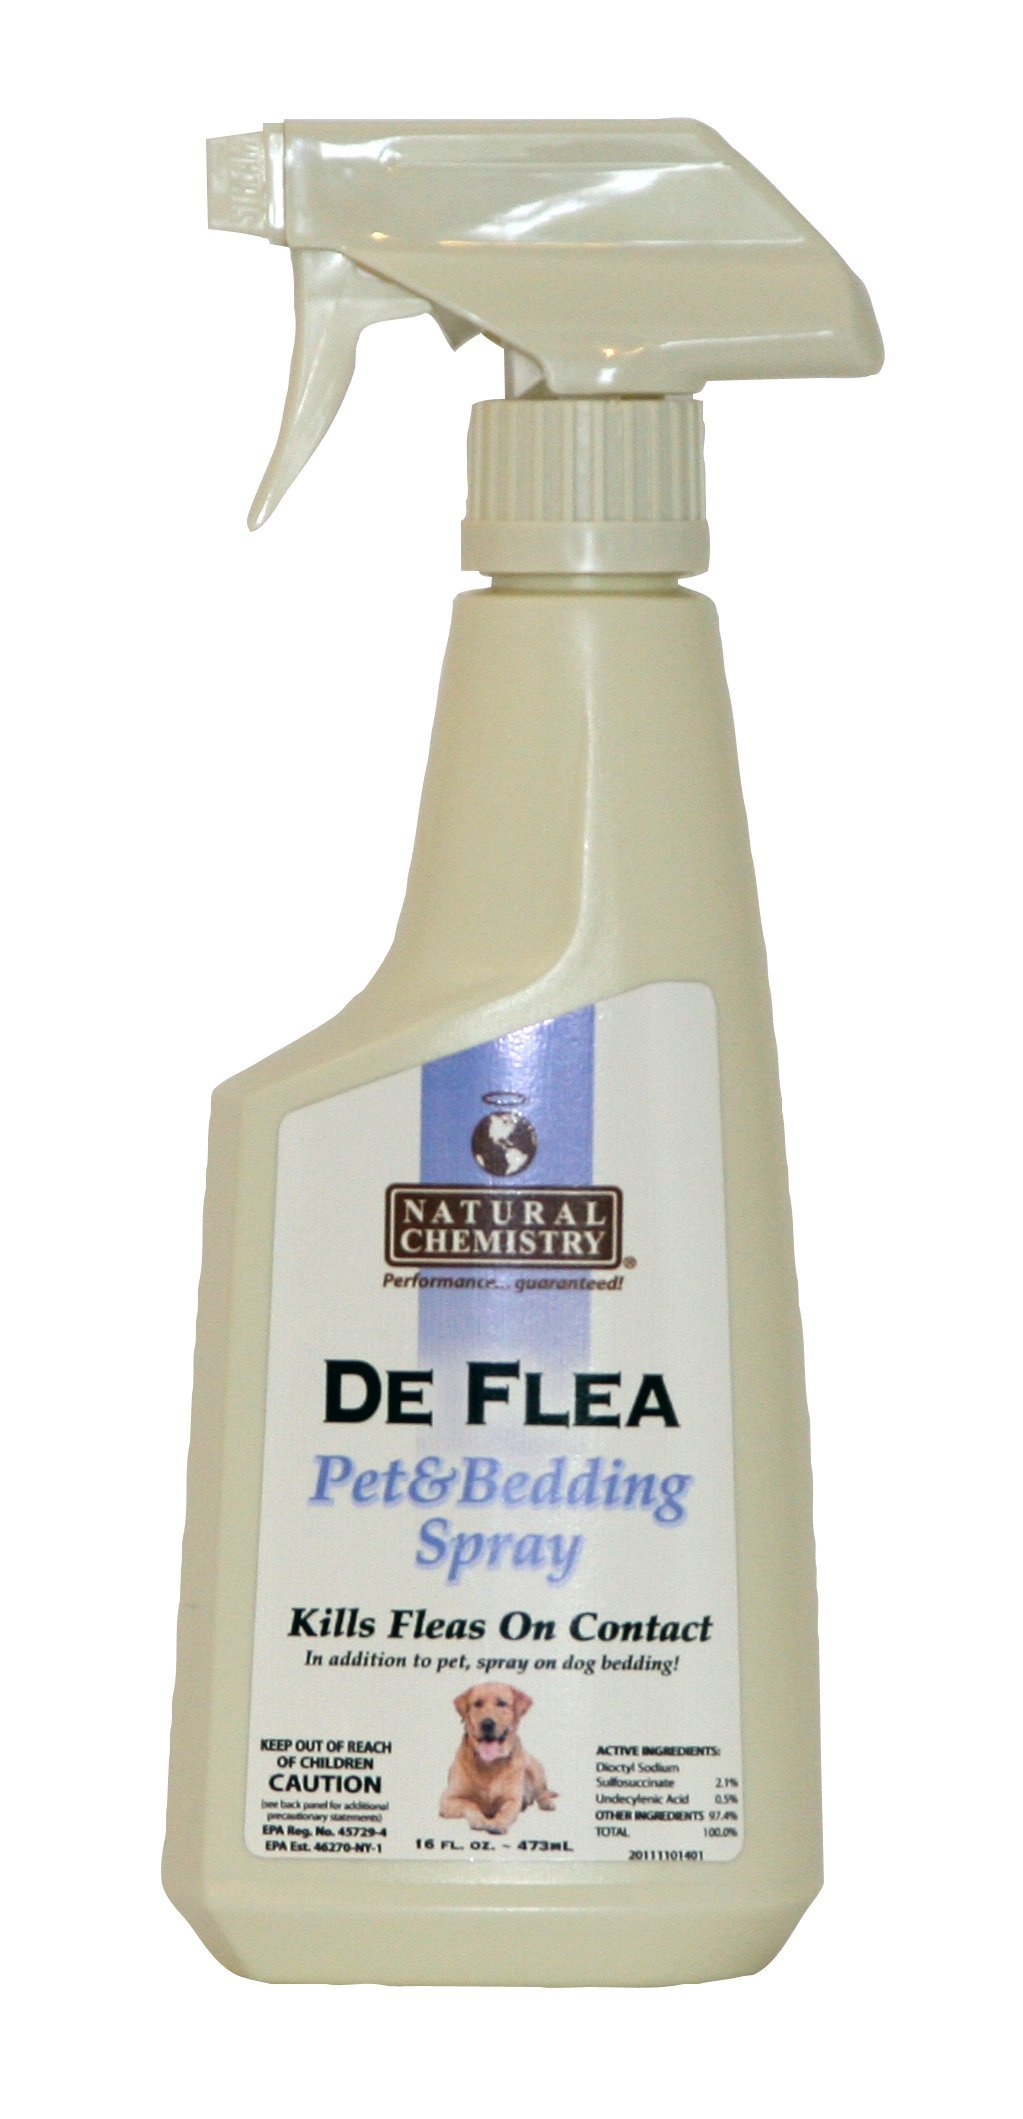 De Flea Pet and Bedding Spray - 24 oz.